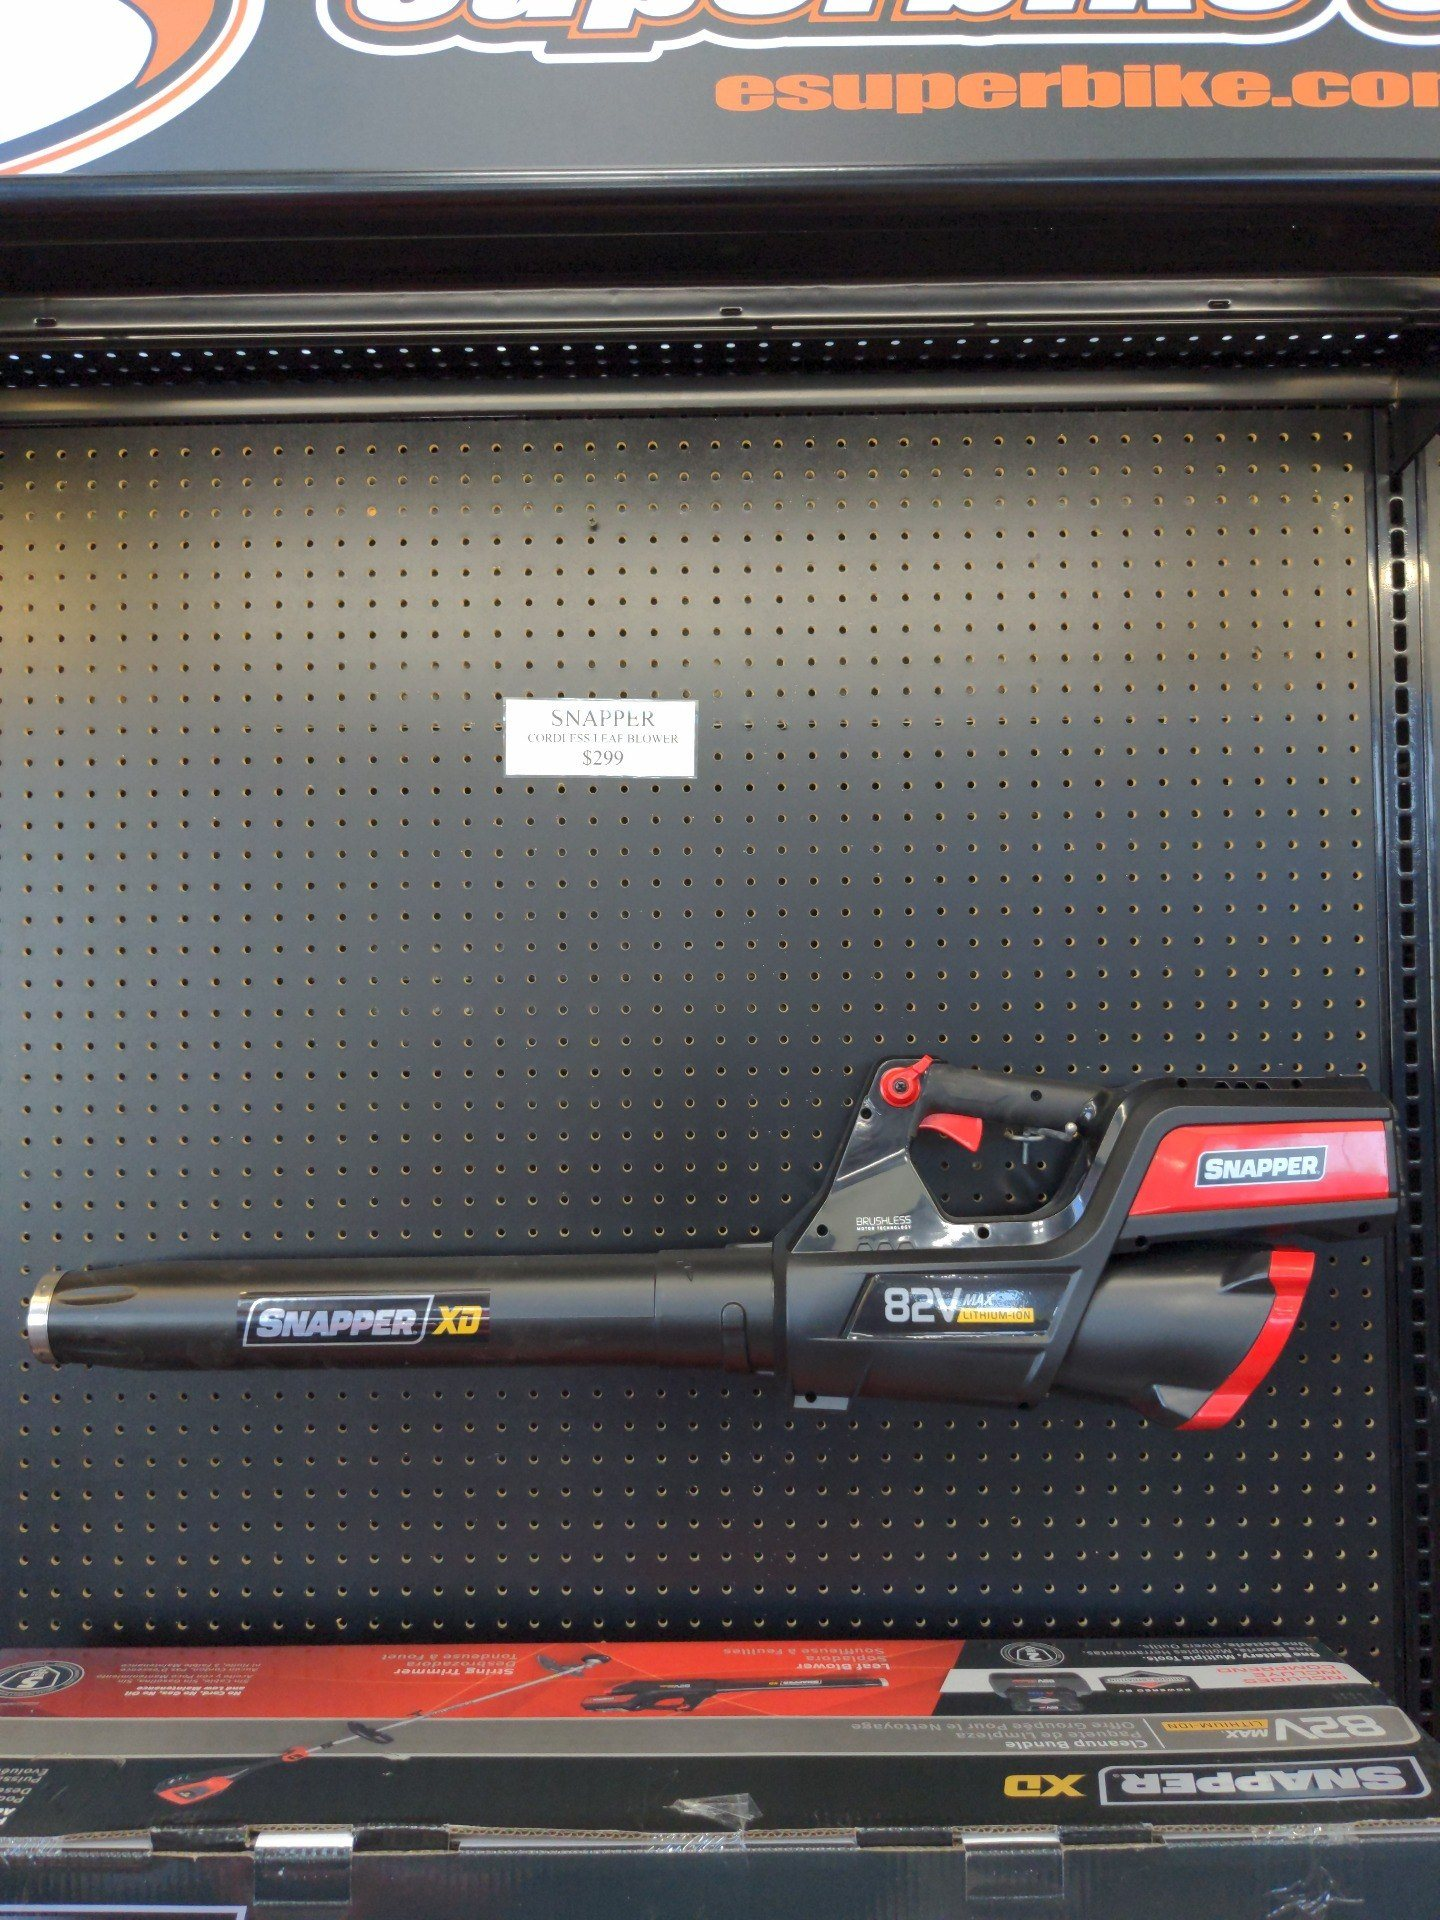 Snapper XD 82V Max Lithium-Ion Cordless Leaf Blower (SXDBL82K) in Evansville, Indiana - Photo 1